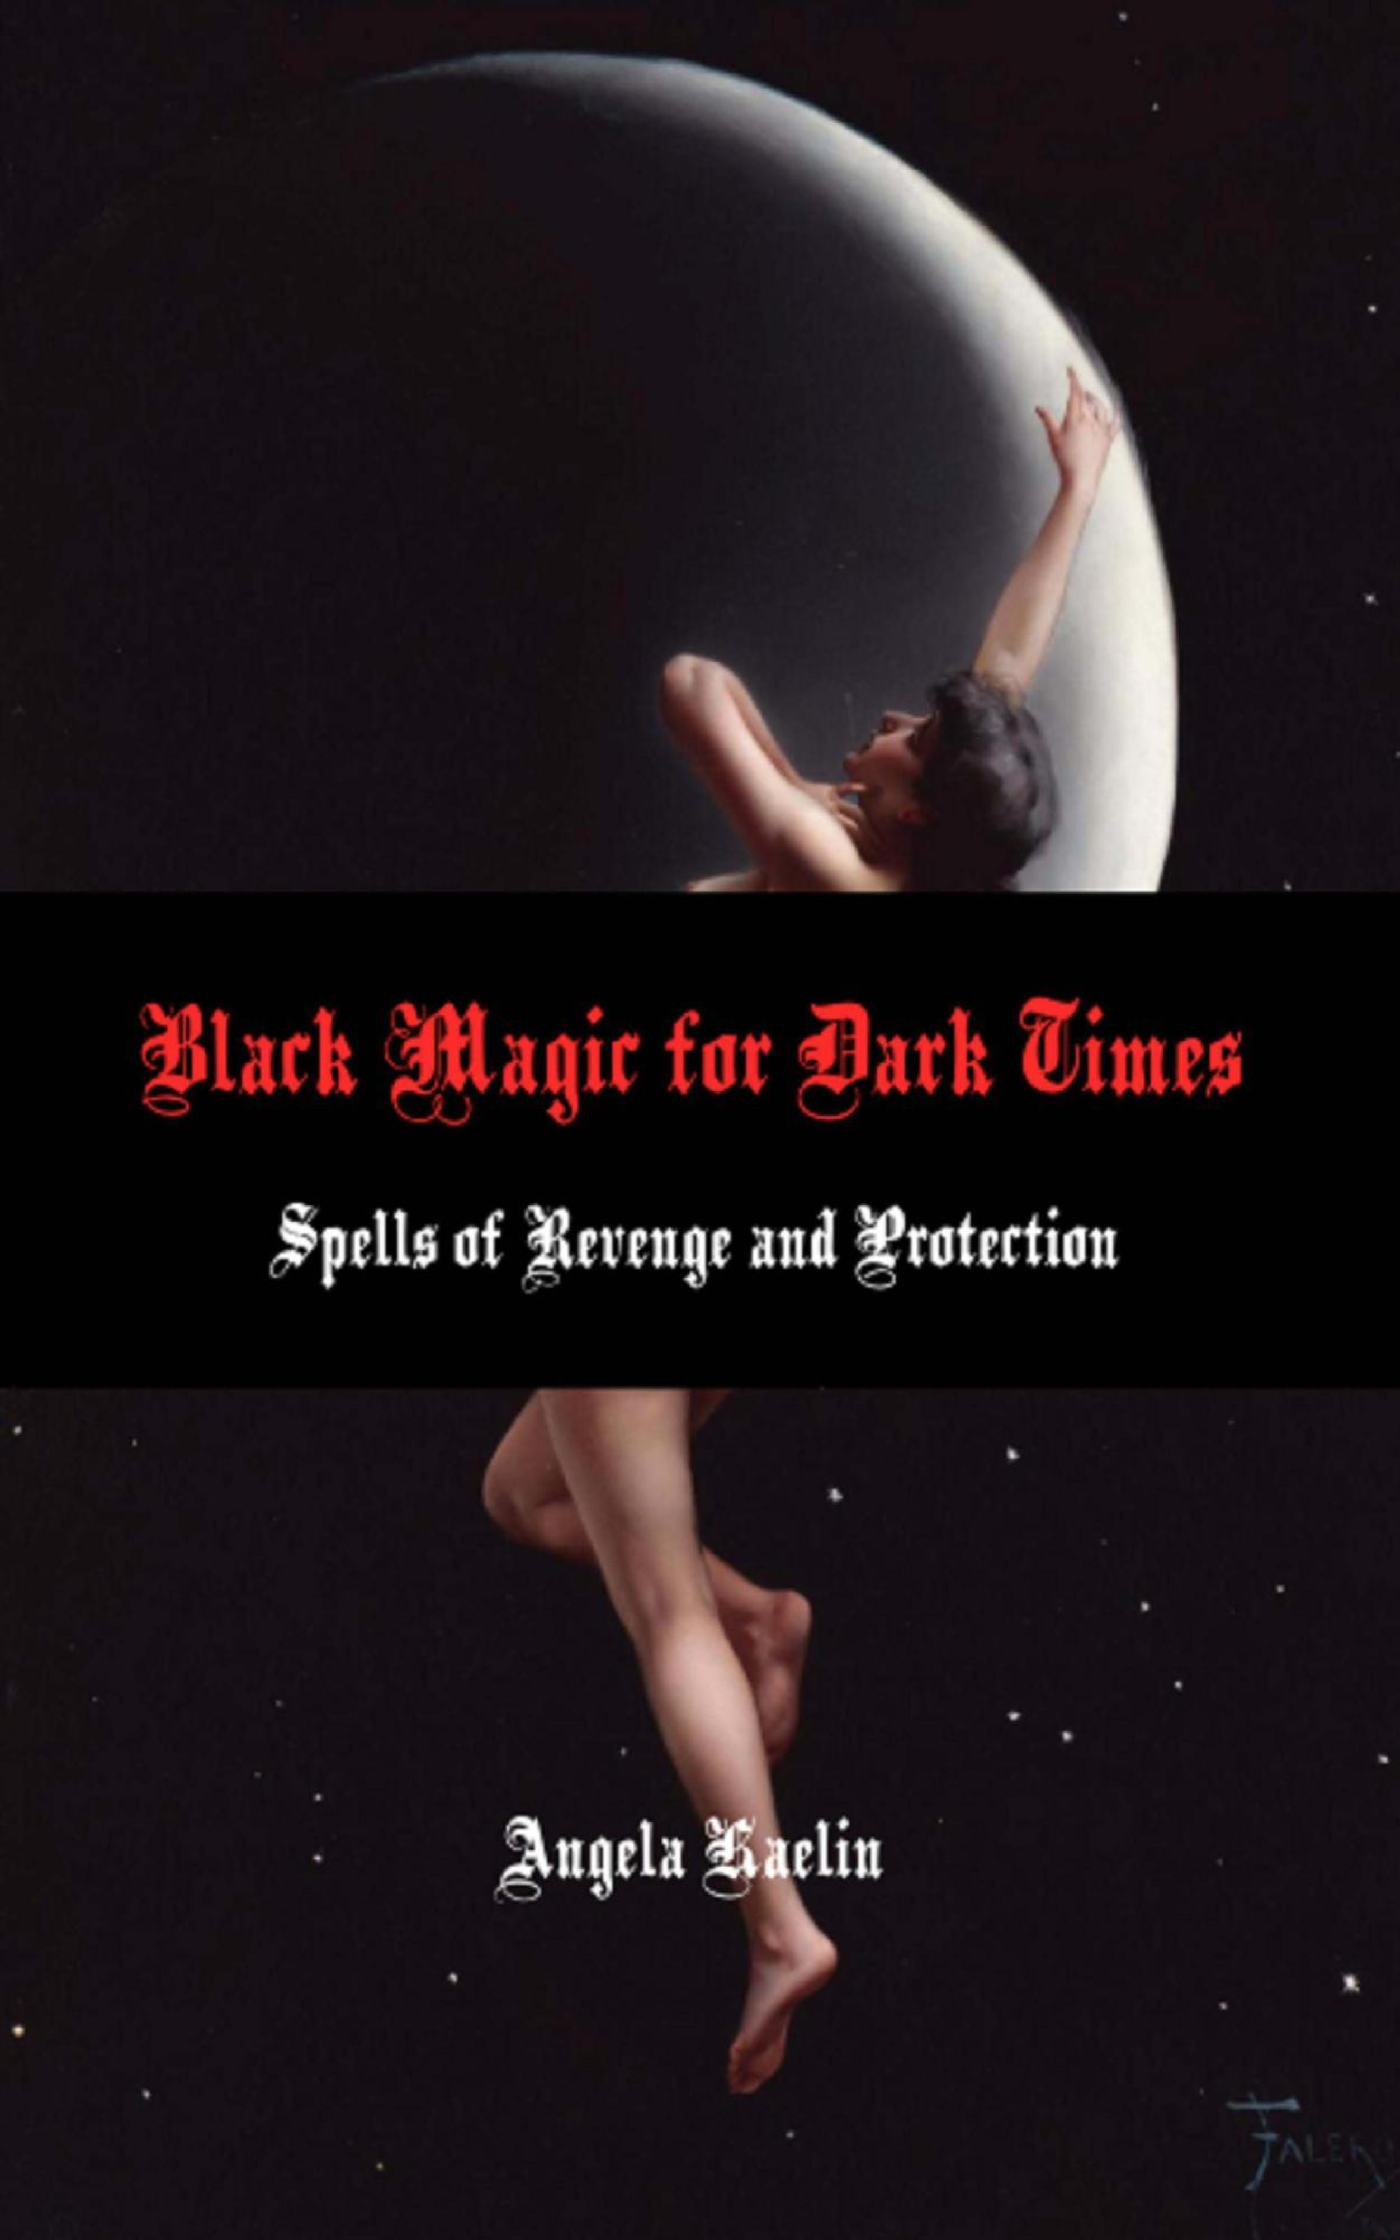 Black Magic for Dark Times: Spells of Revenge and Protection